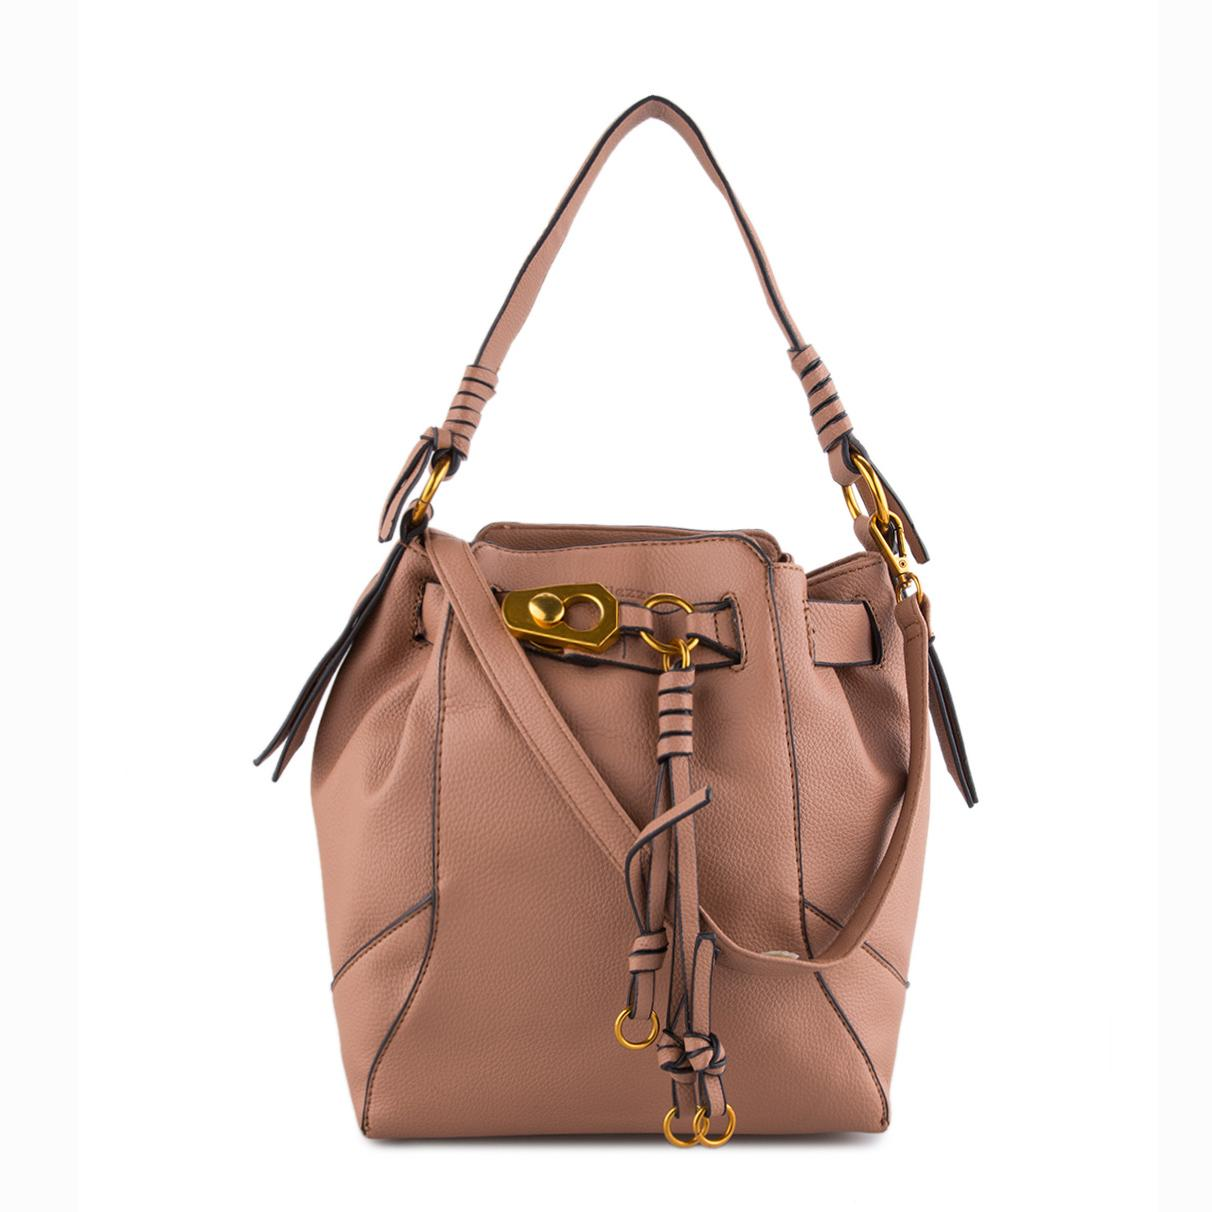 Bellezza  Bucket bag  MS-E121 Tas Fashion Tas Wanita